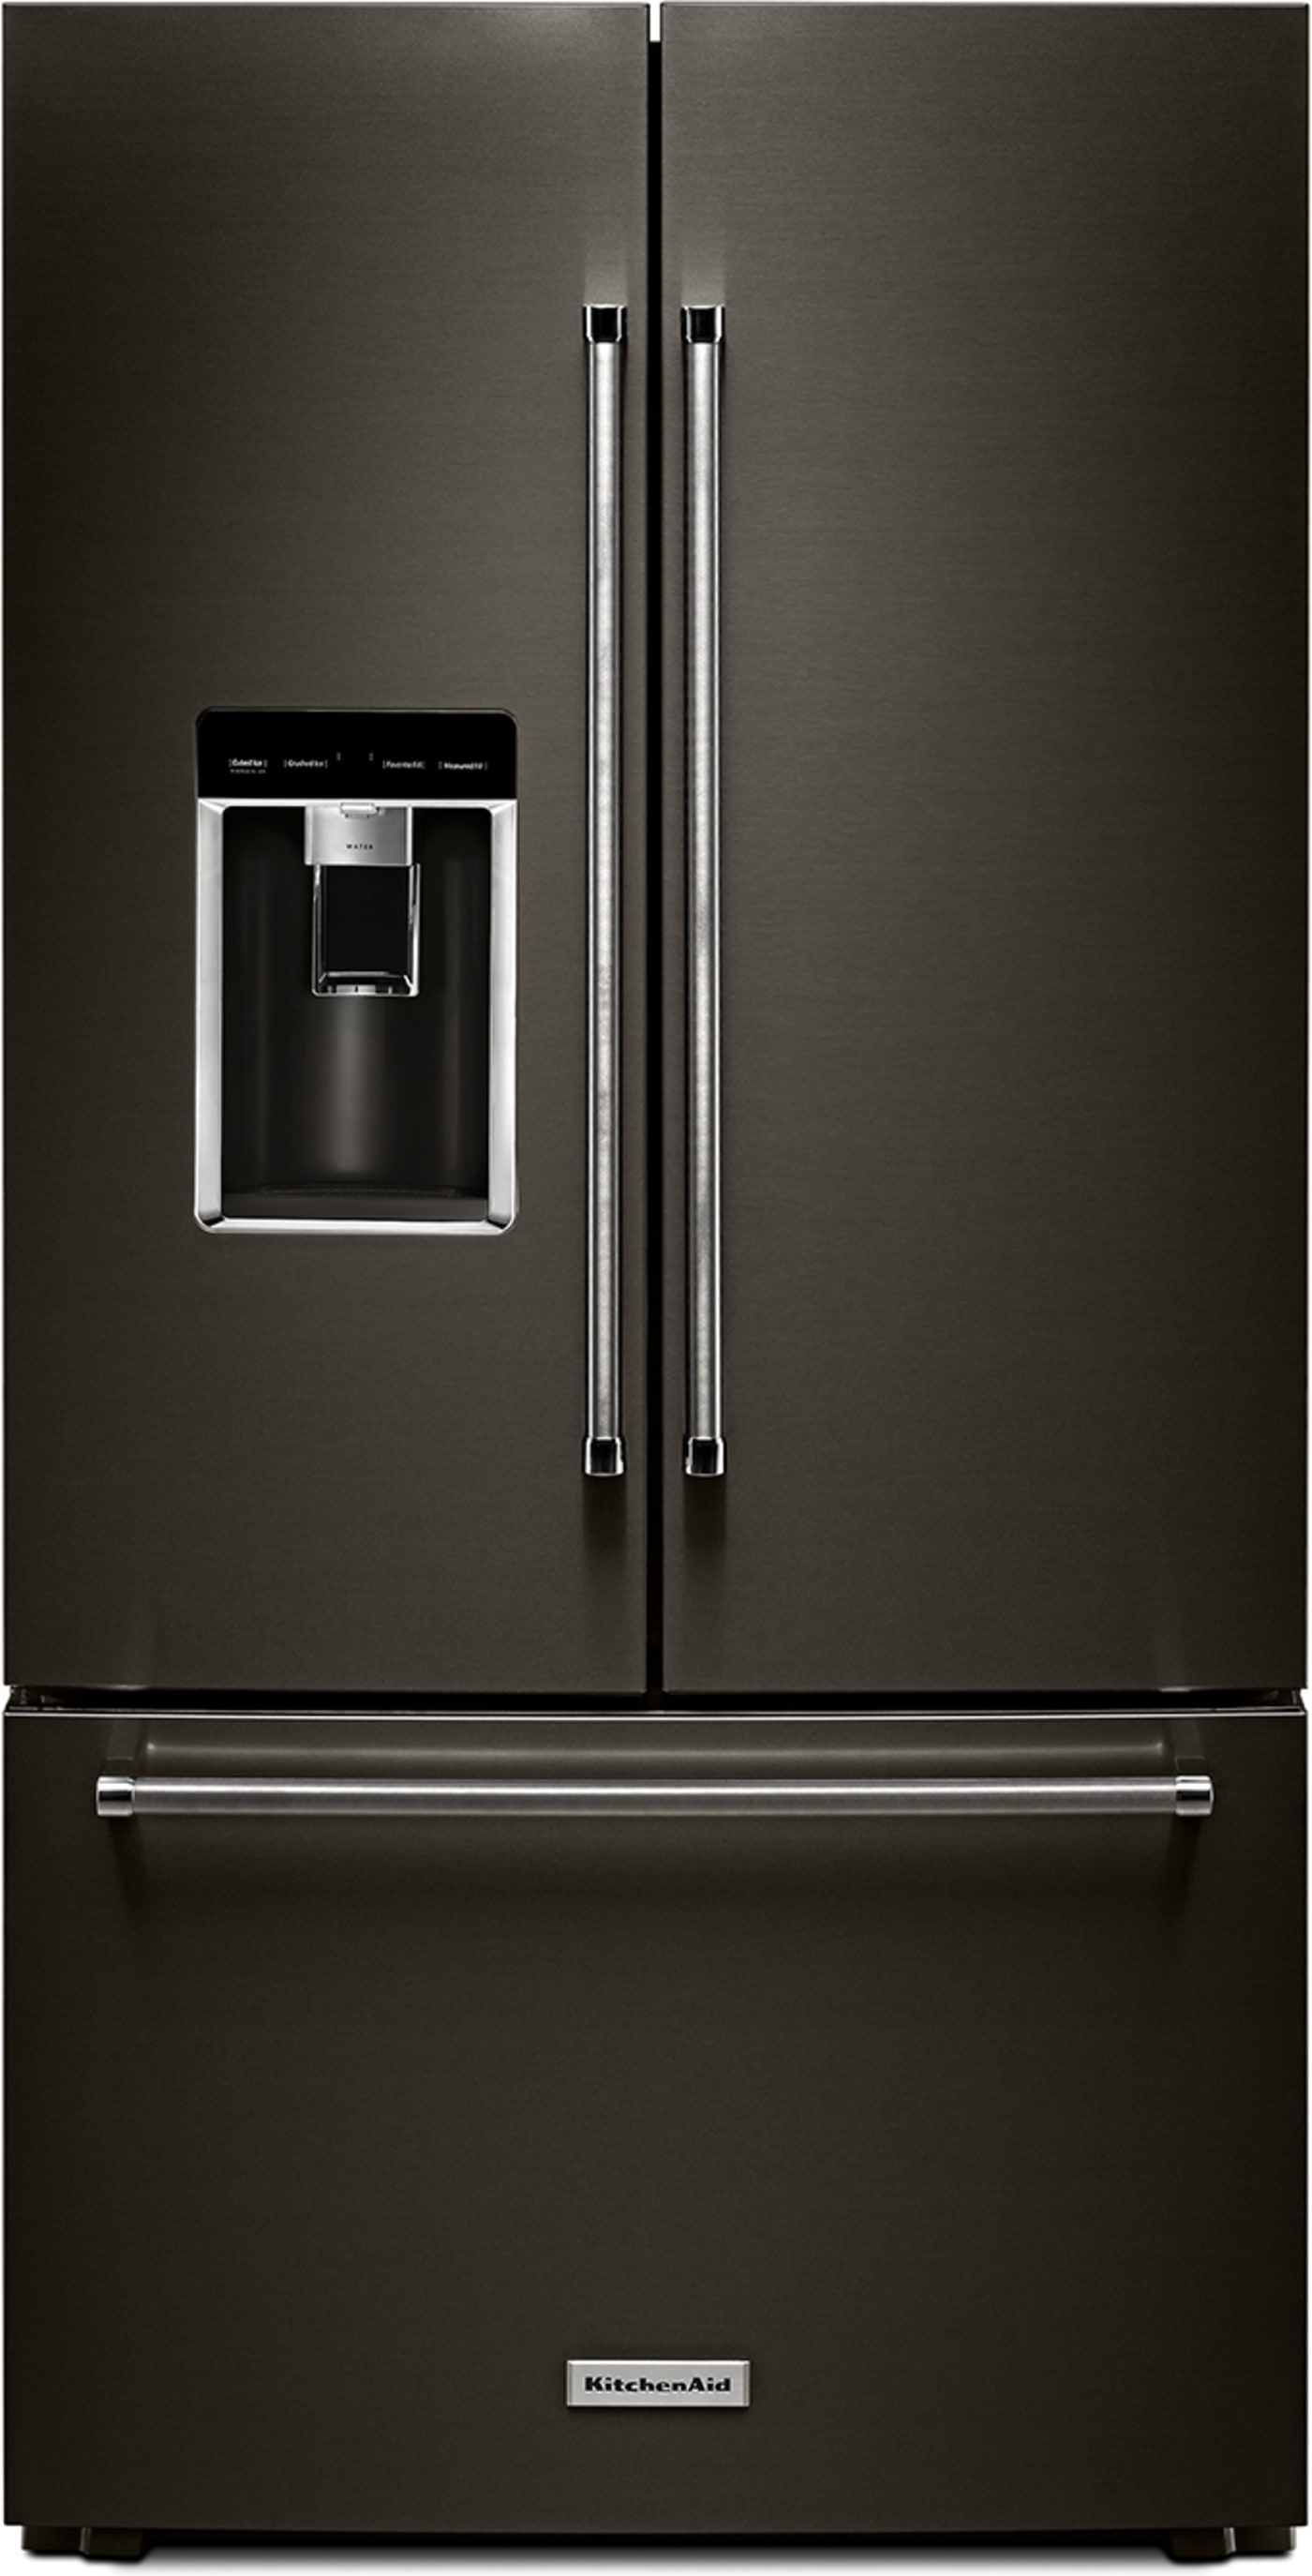 Krfc704fbs By Kitchenaid French Door Refrigerators